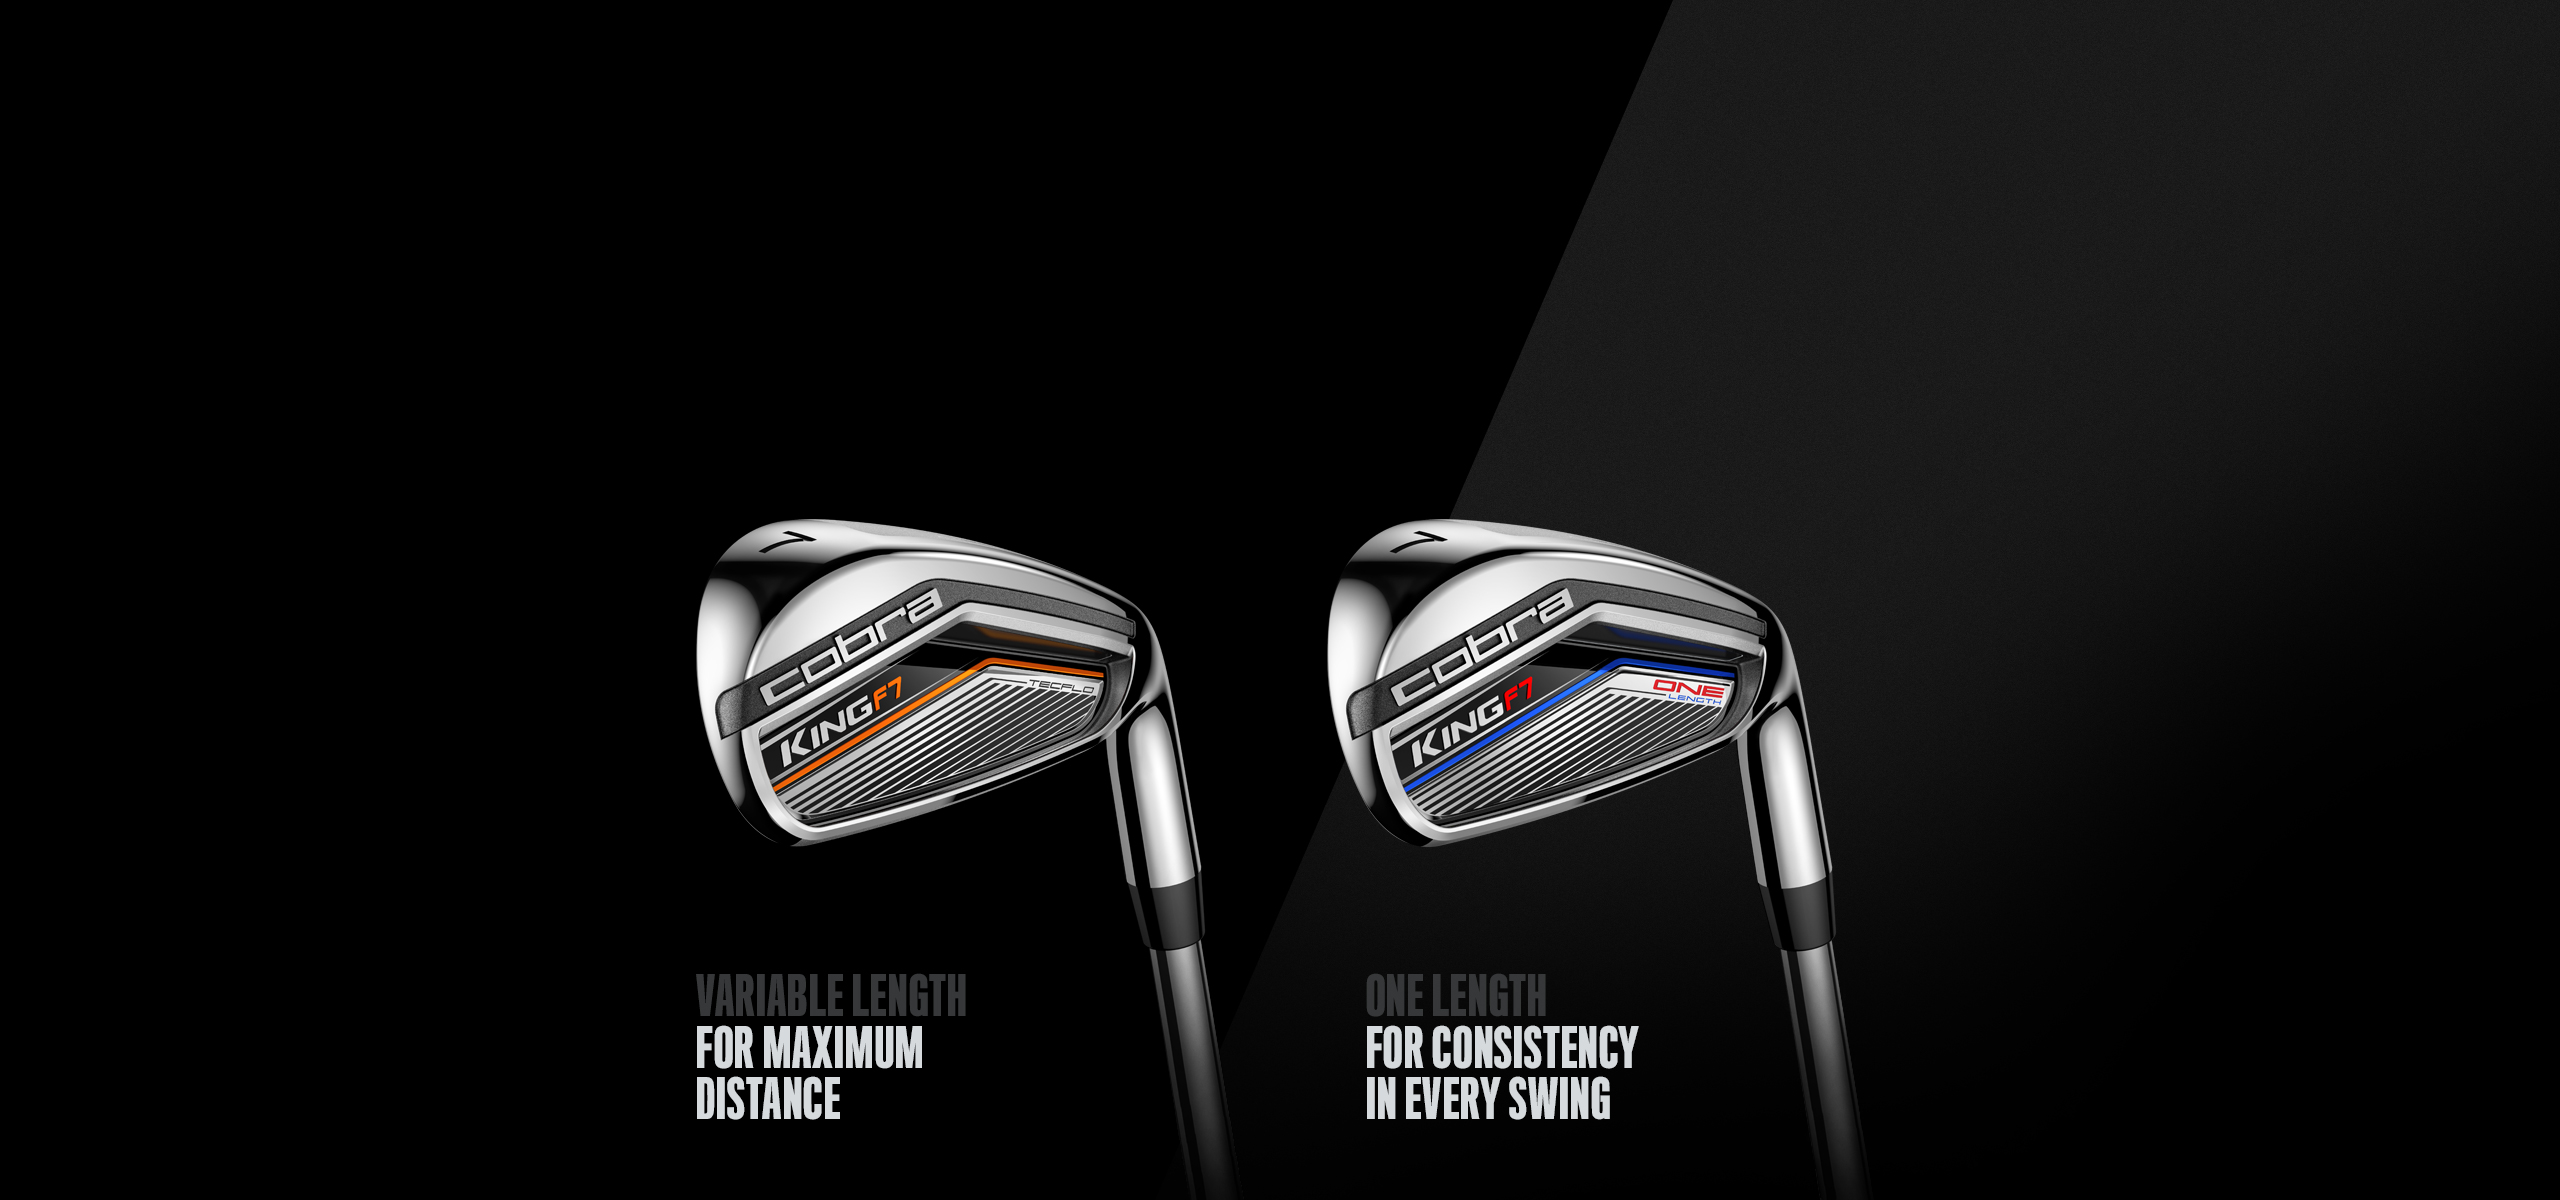 Cobra KING F7 Golf Club Irons Variable and One Length 2017